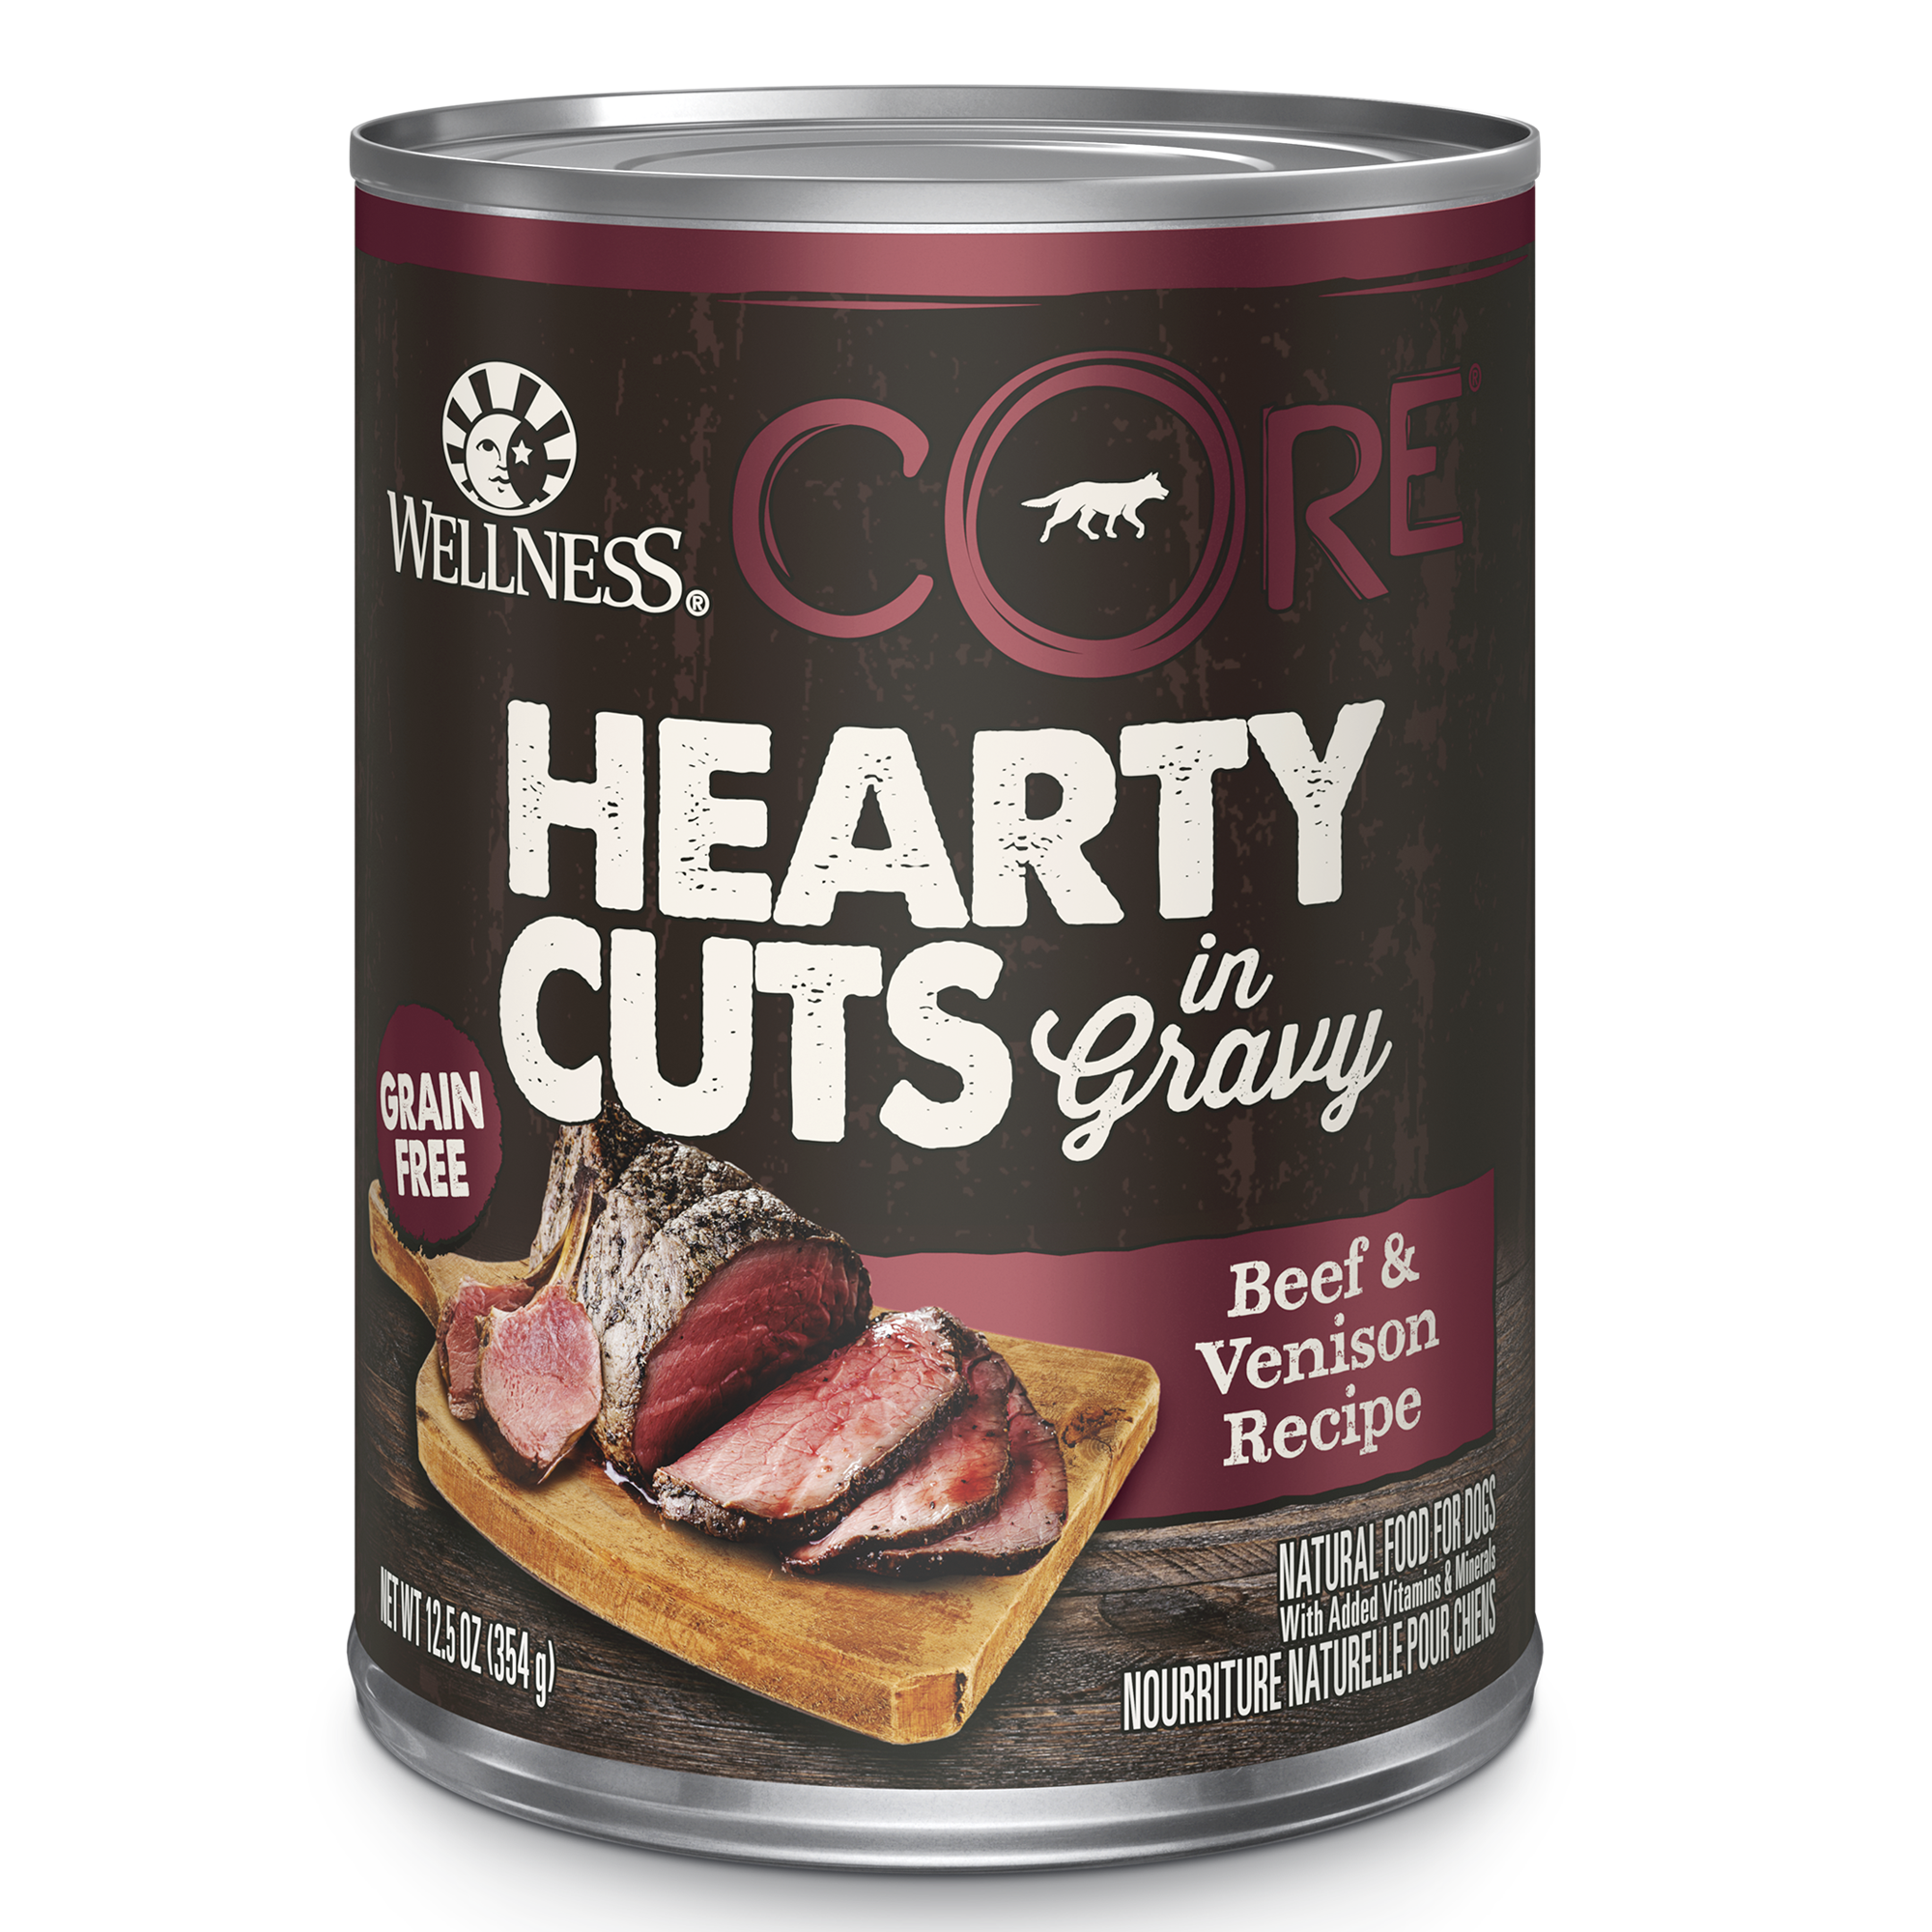 Hearty Cuts Beef and Venison